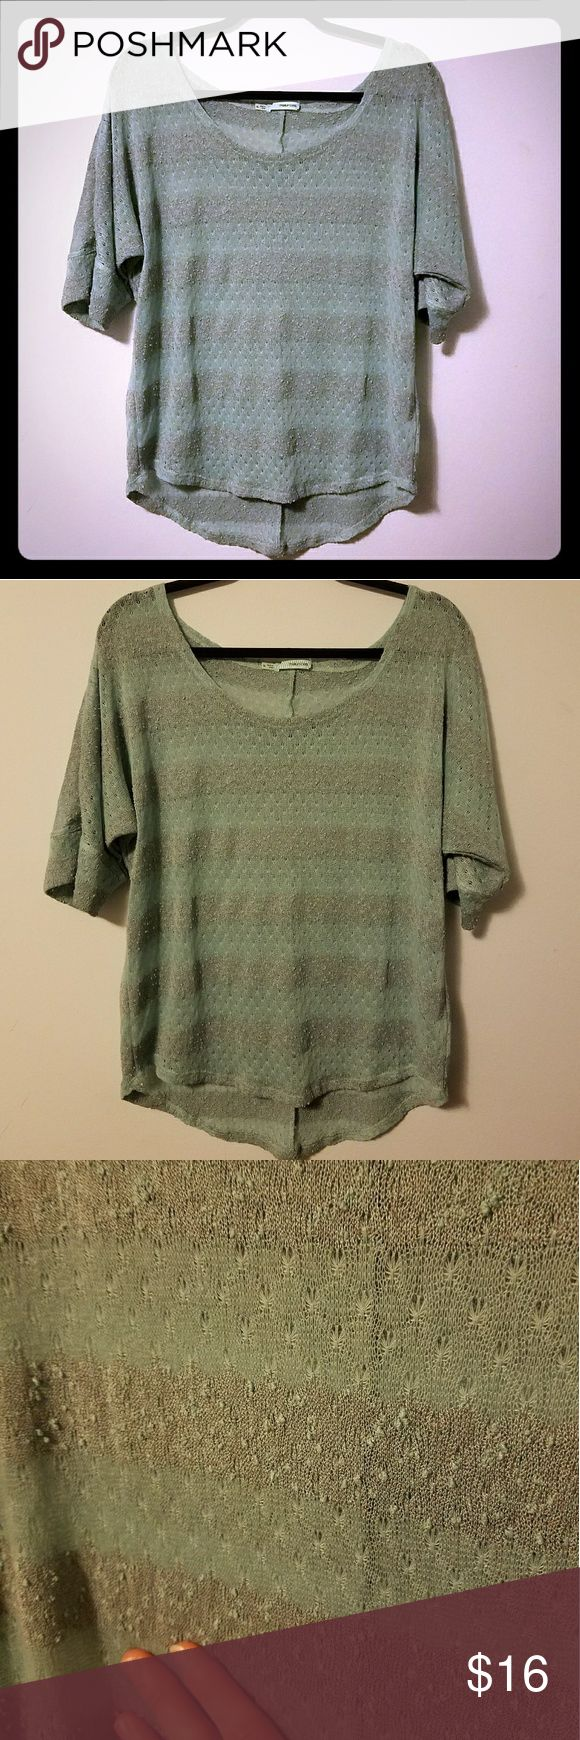 Maurices lightweight sage green sweater, sz XL This is a great sweater for transitional weather. Half sleeves. Dolman style. Sage and mint green stripes. Open knit. High low rounded hem. Scoop neck. Very airy and flowy cut, which is very flattering and flirtatious. Super comfortable. Looks beautiful with grey green eyes!!! Must be worn over something. Great weekend errand top. Size XL, fits TTS and could work for a large to an XXL, depending on how loose you prefer your sweaters. No stains…